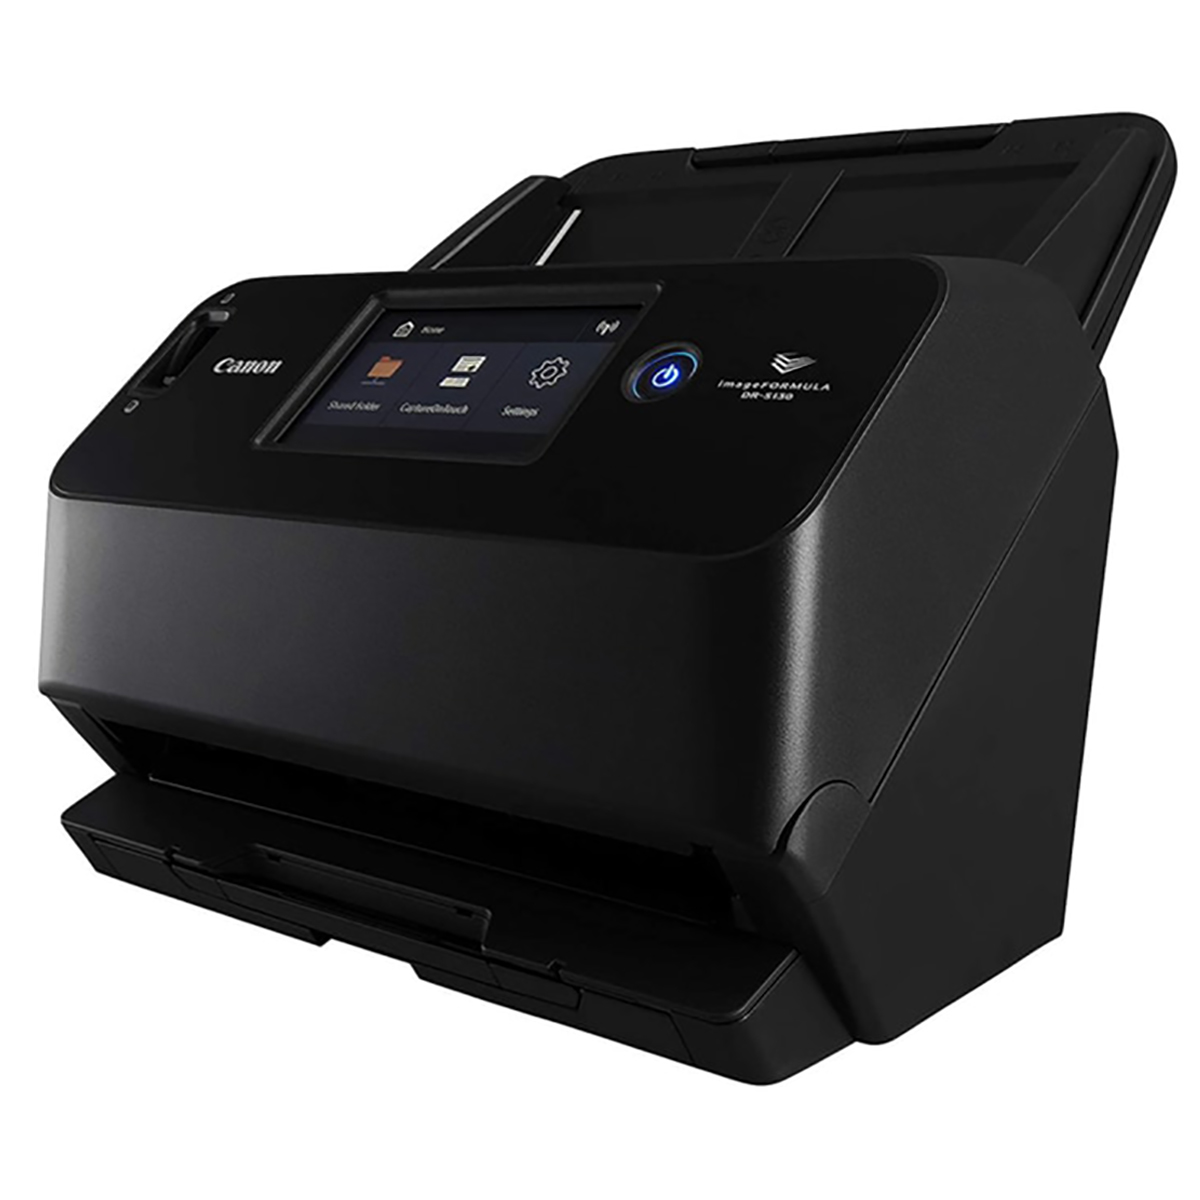 Canon DR-S130 A4 DT Workgroup Document Scanner